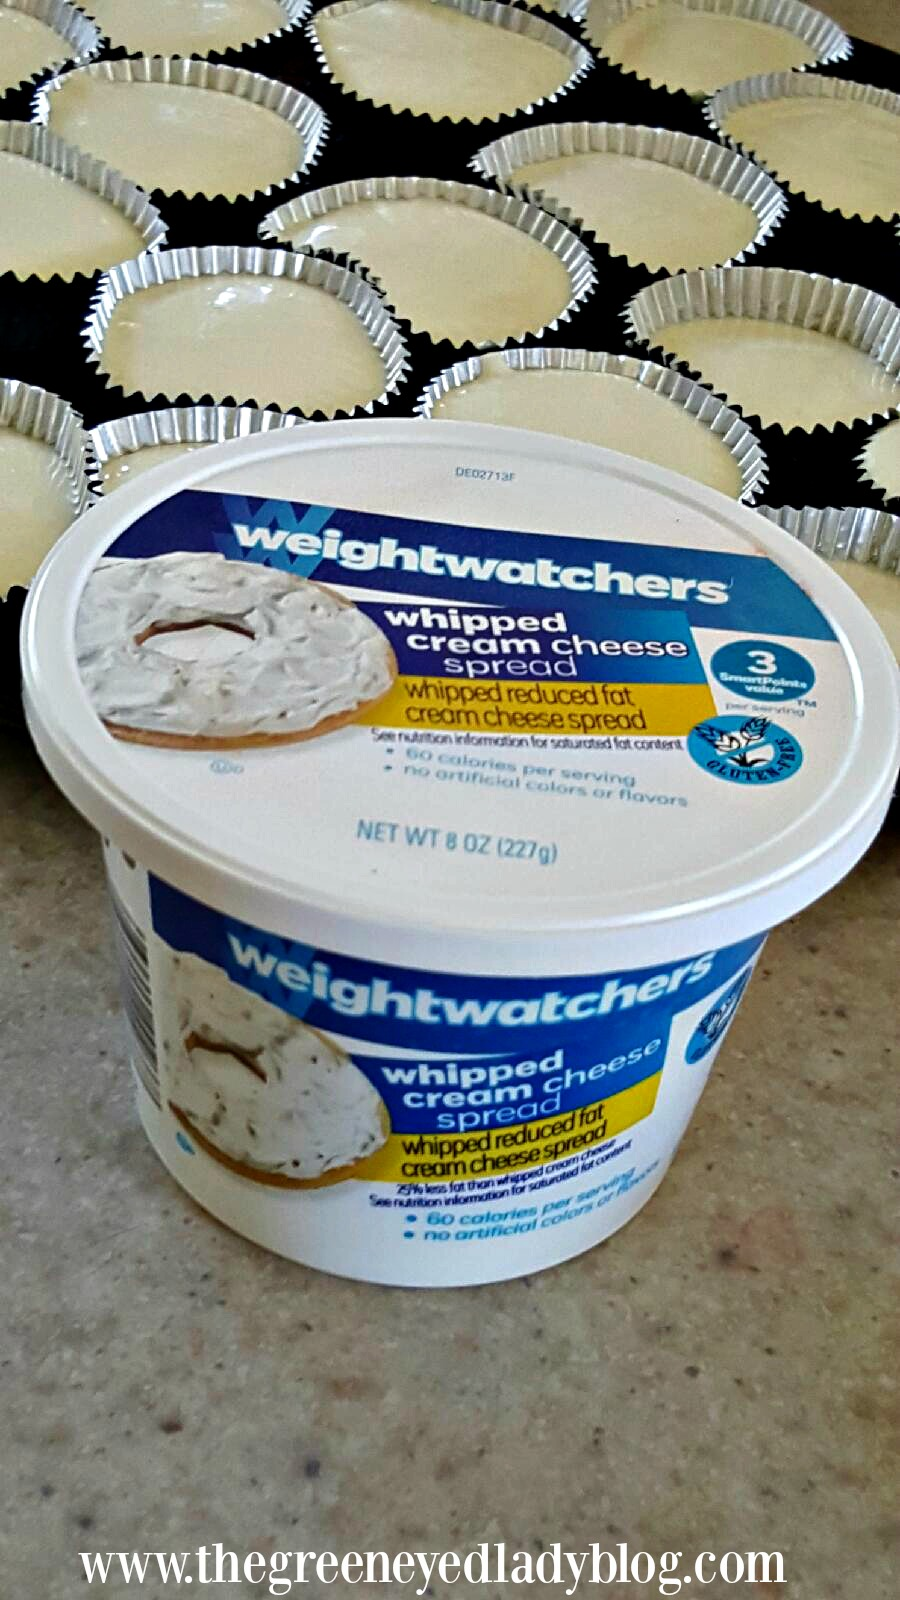 WWCreamCheese2